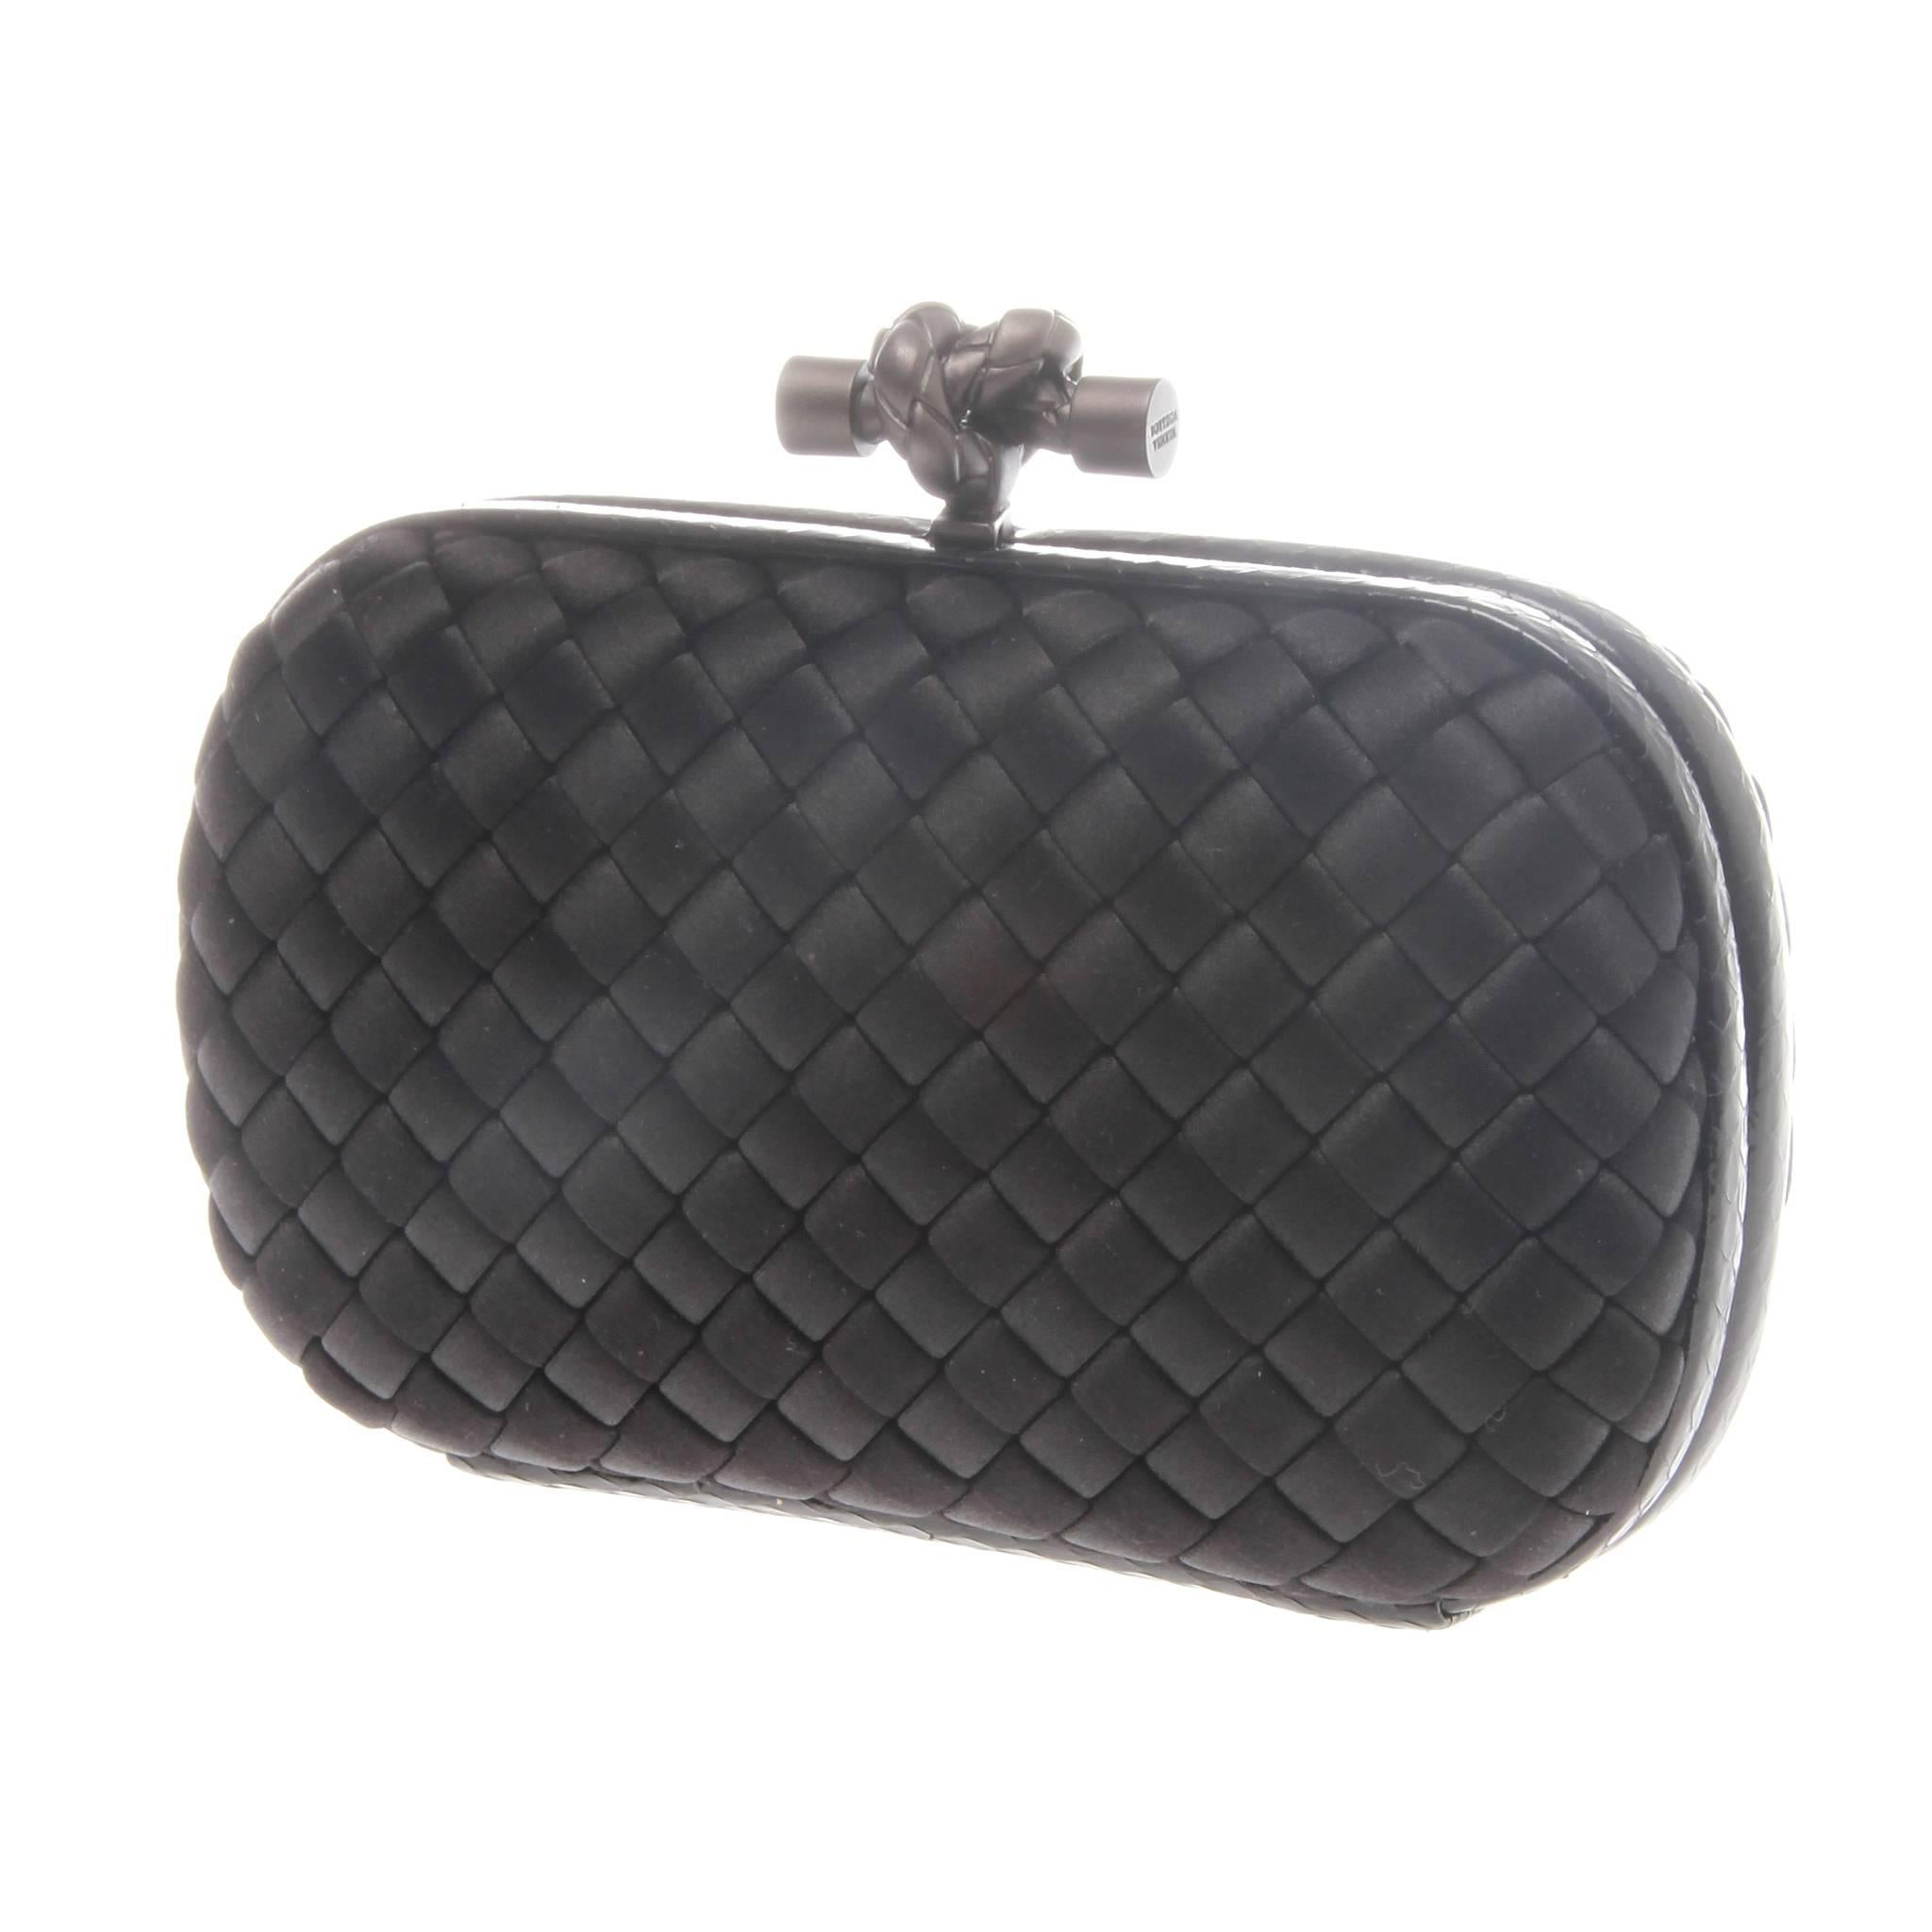 8a70f2b8f774 Bottega Veneta Black Intrecciato Satin Knot Clutch For Sale at 1stdibs